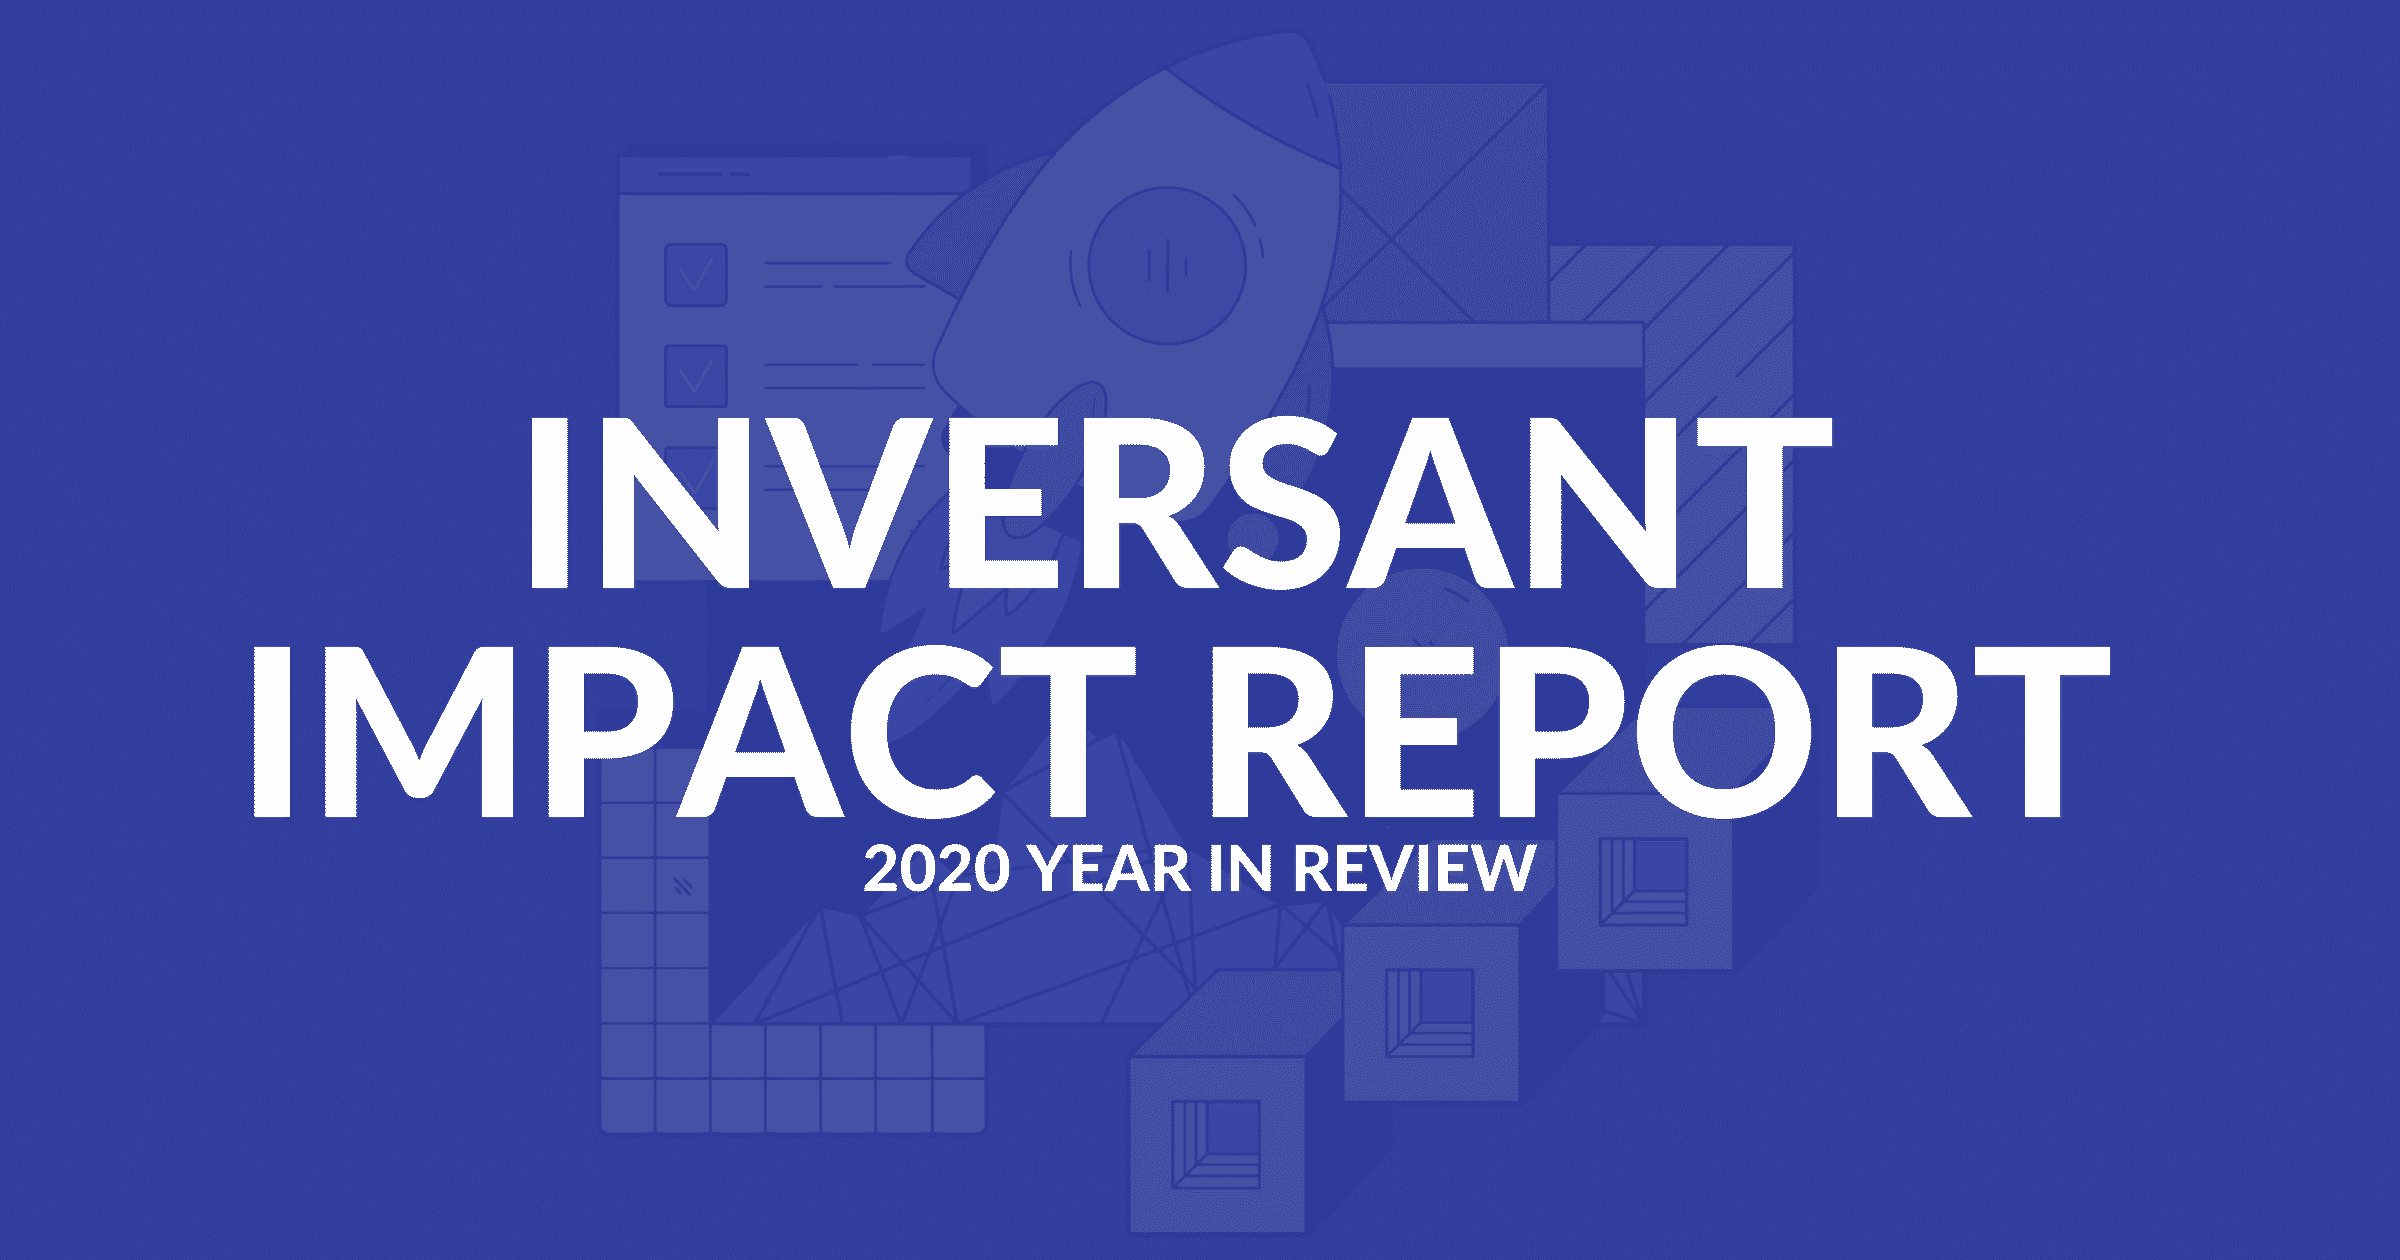 Inversant-impact-report-2020-in-review